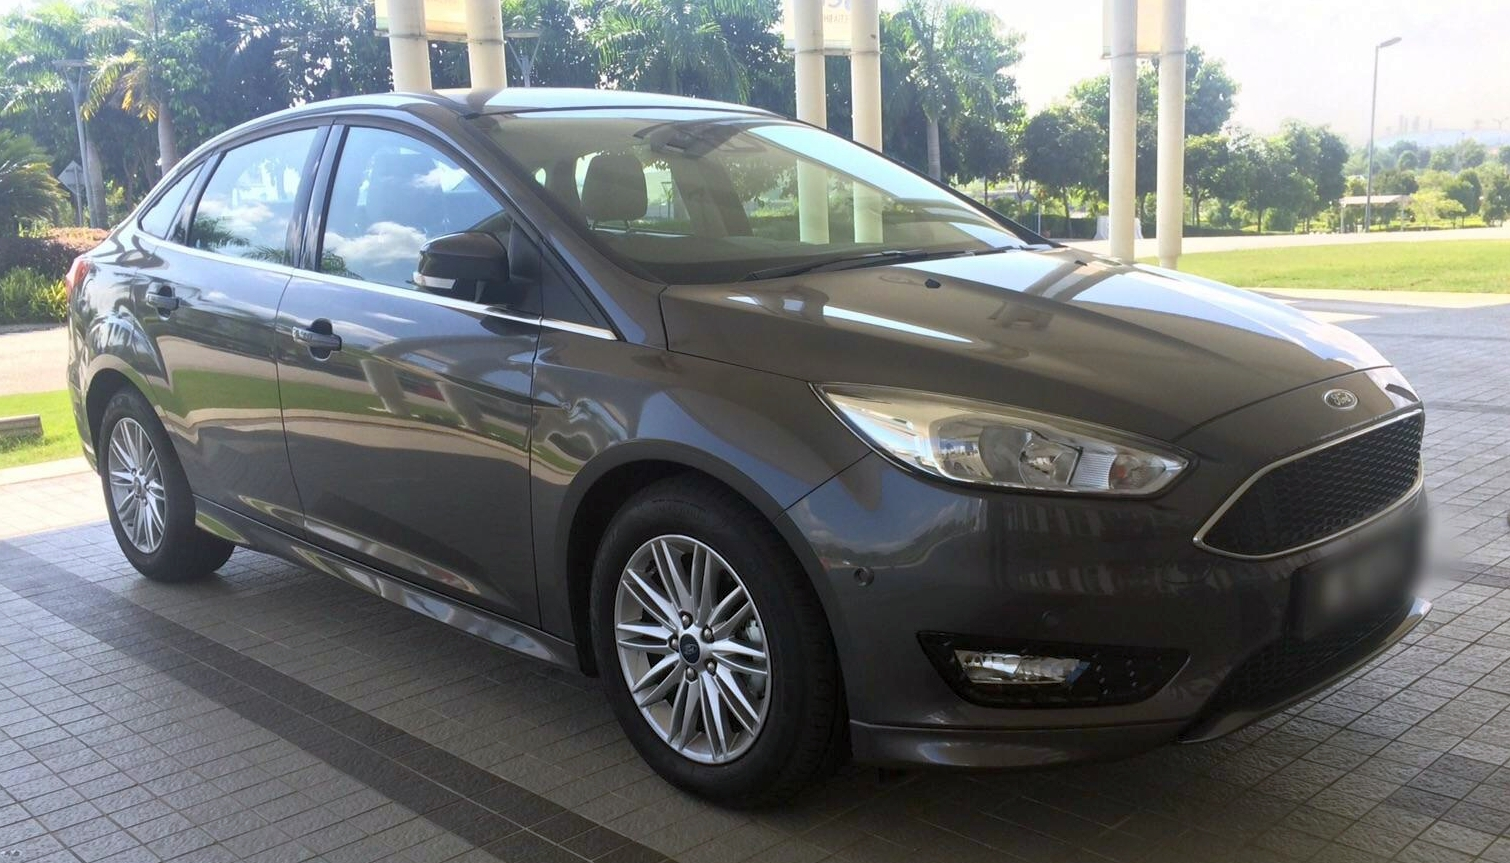 C346 Ford Focus Facelift 1 5l Ecoboost Hatch And Sedan Variants Sighted In Malaysia Launching